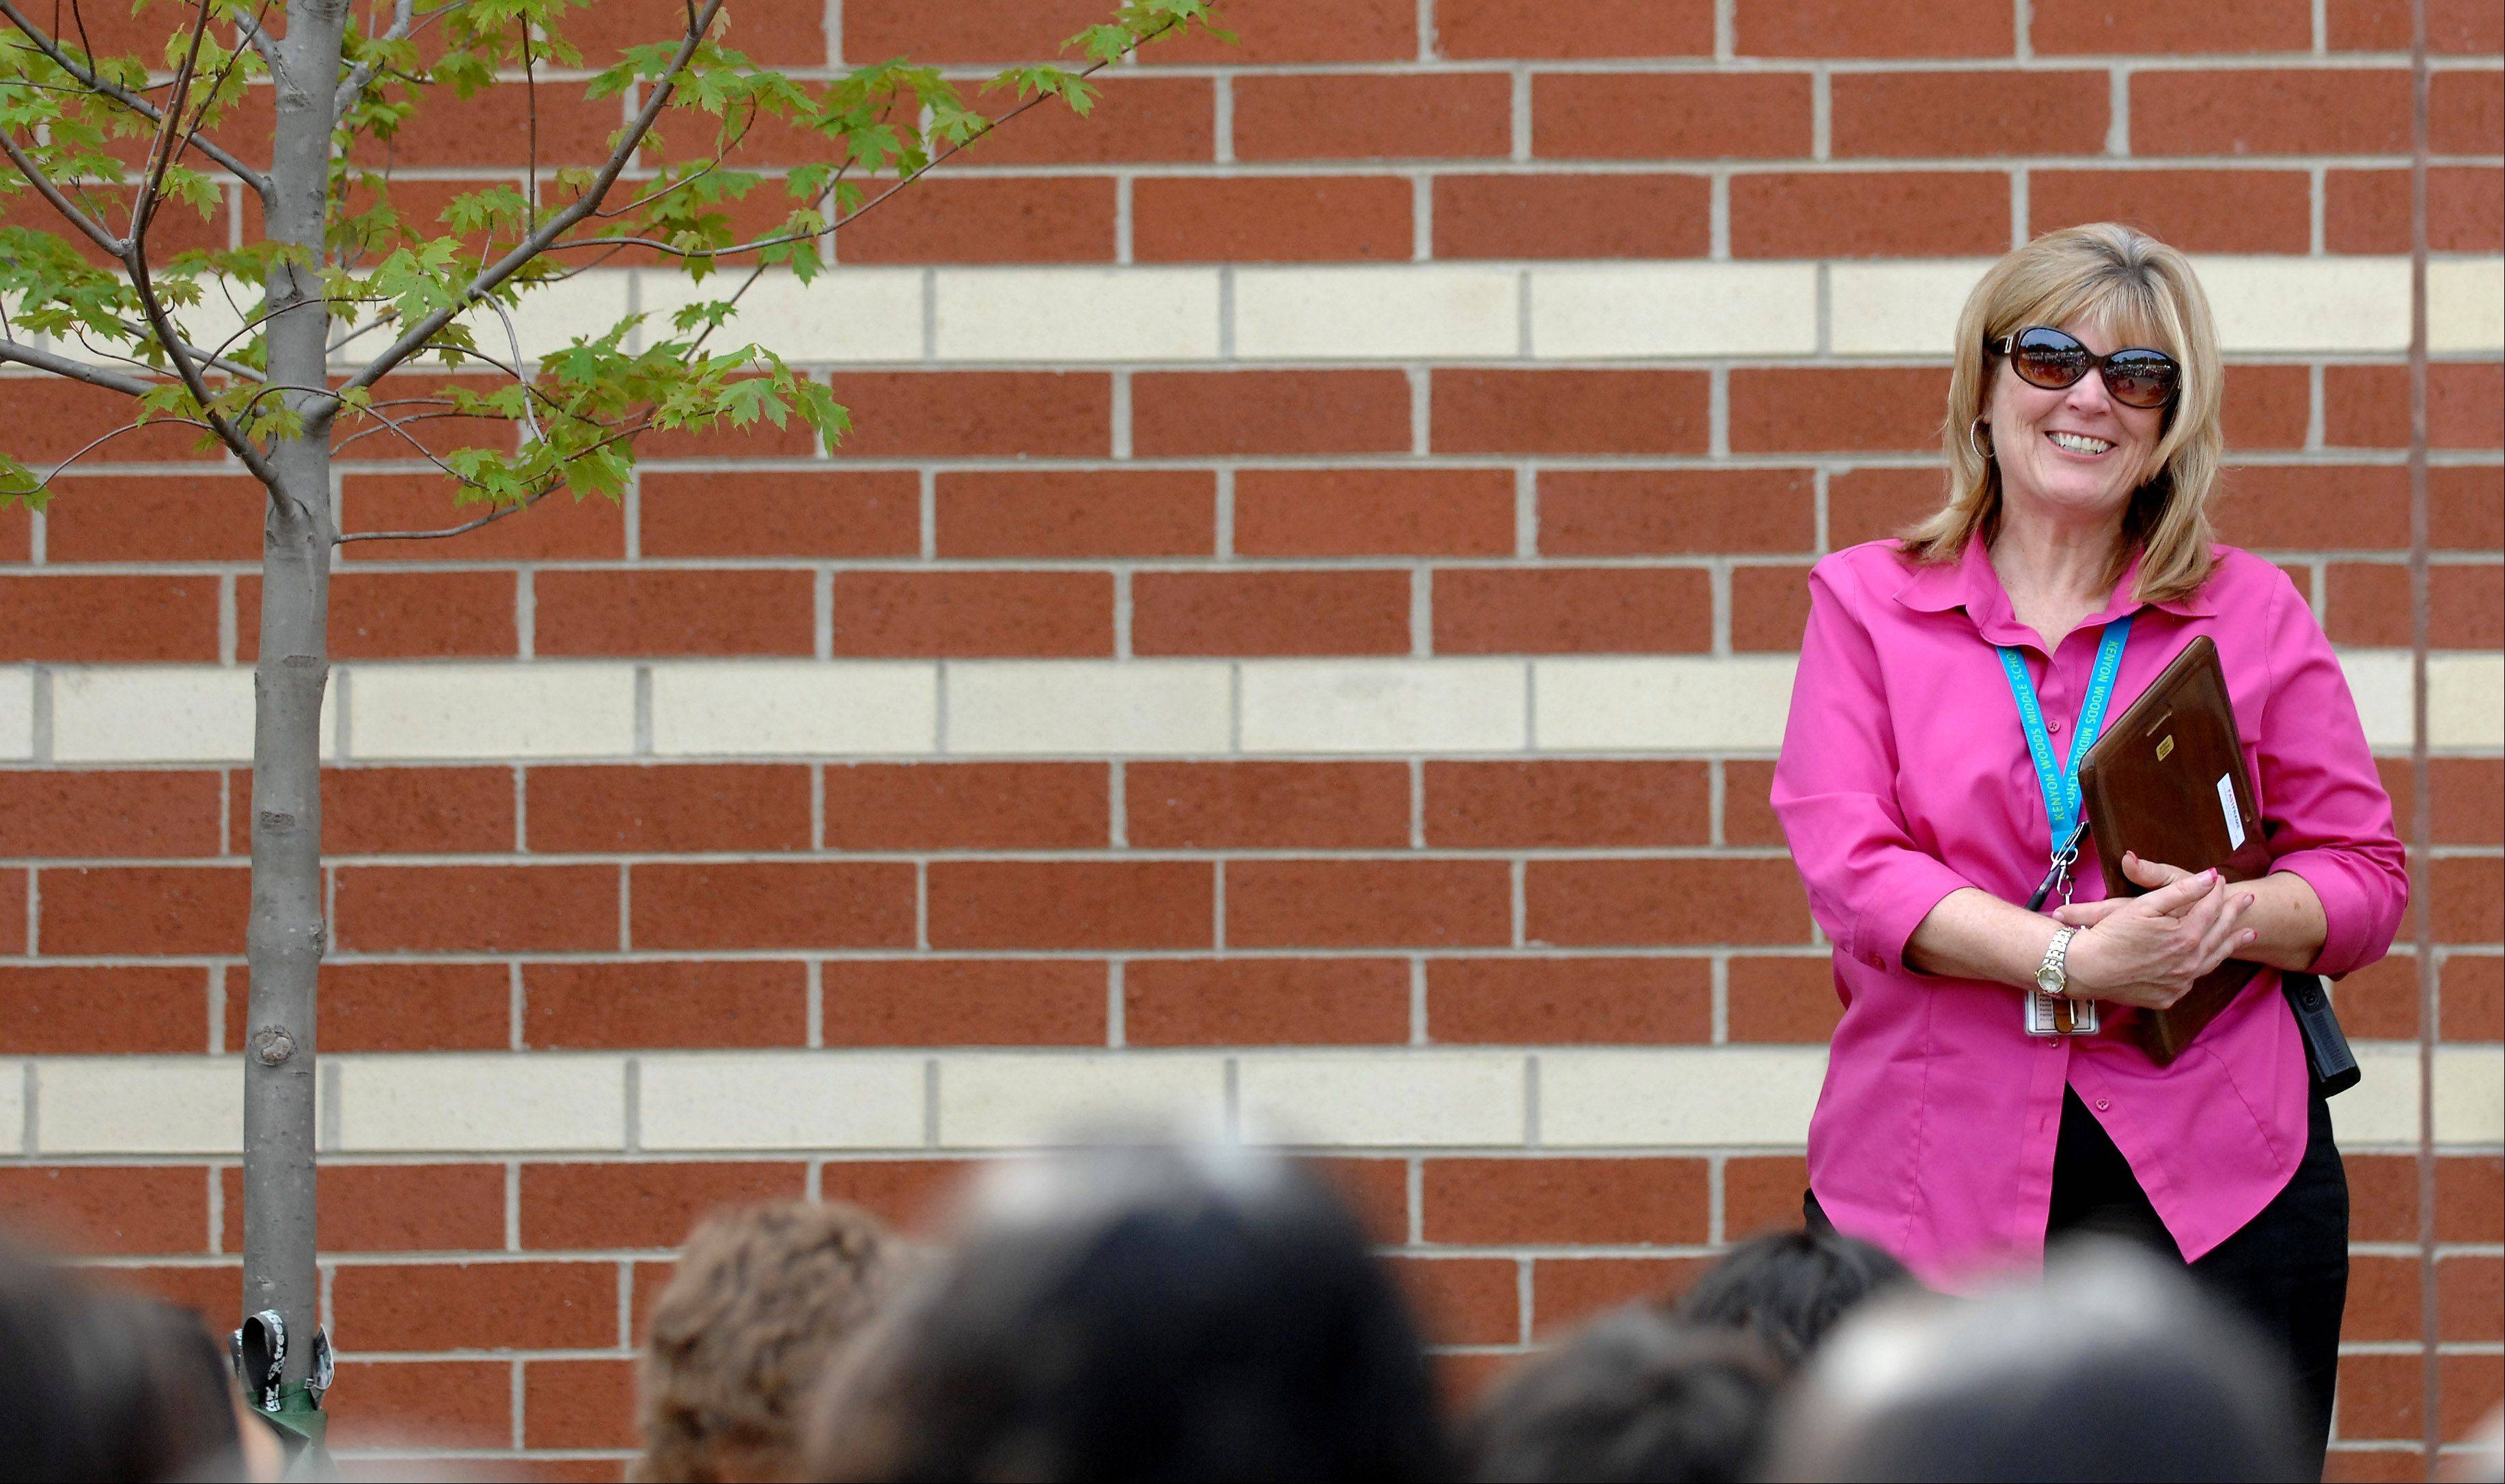 Kenyon Woods Middle School Principal Sue Welu smiles at the applause she gets from students during a ceremony Monday dedicating a tree in honor of her retirement.